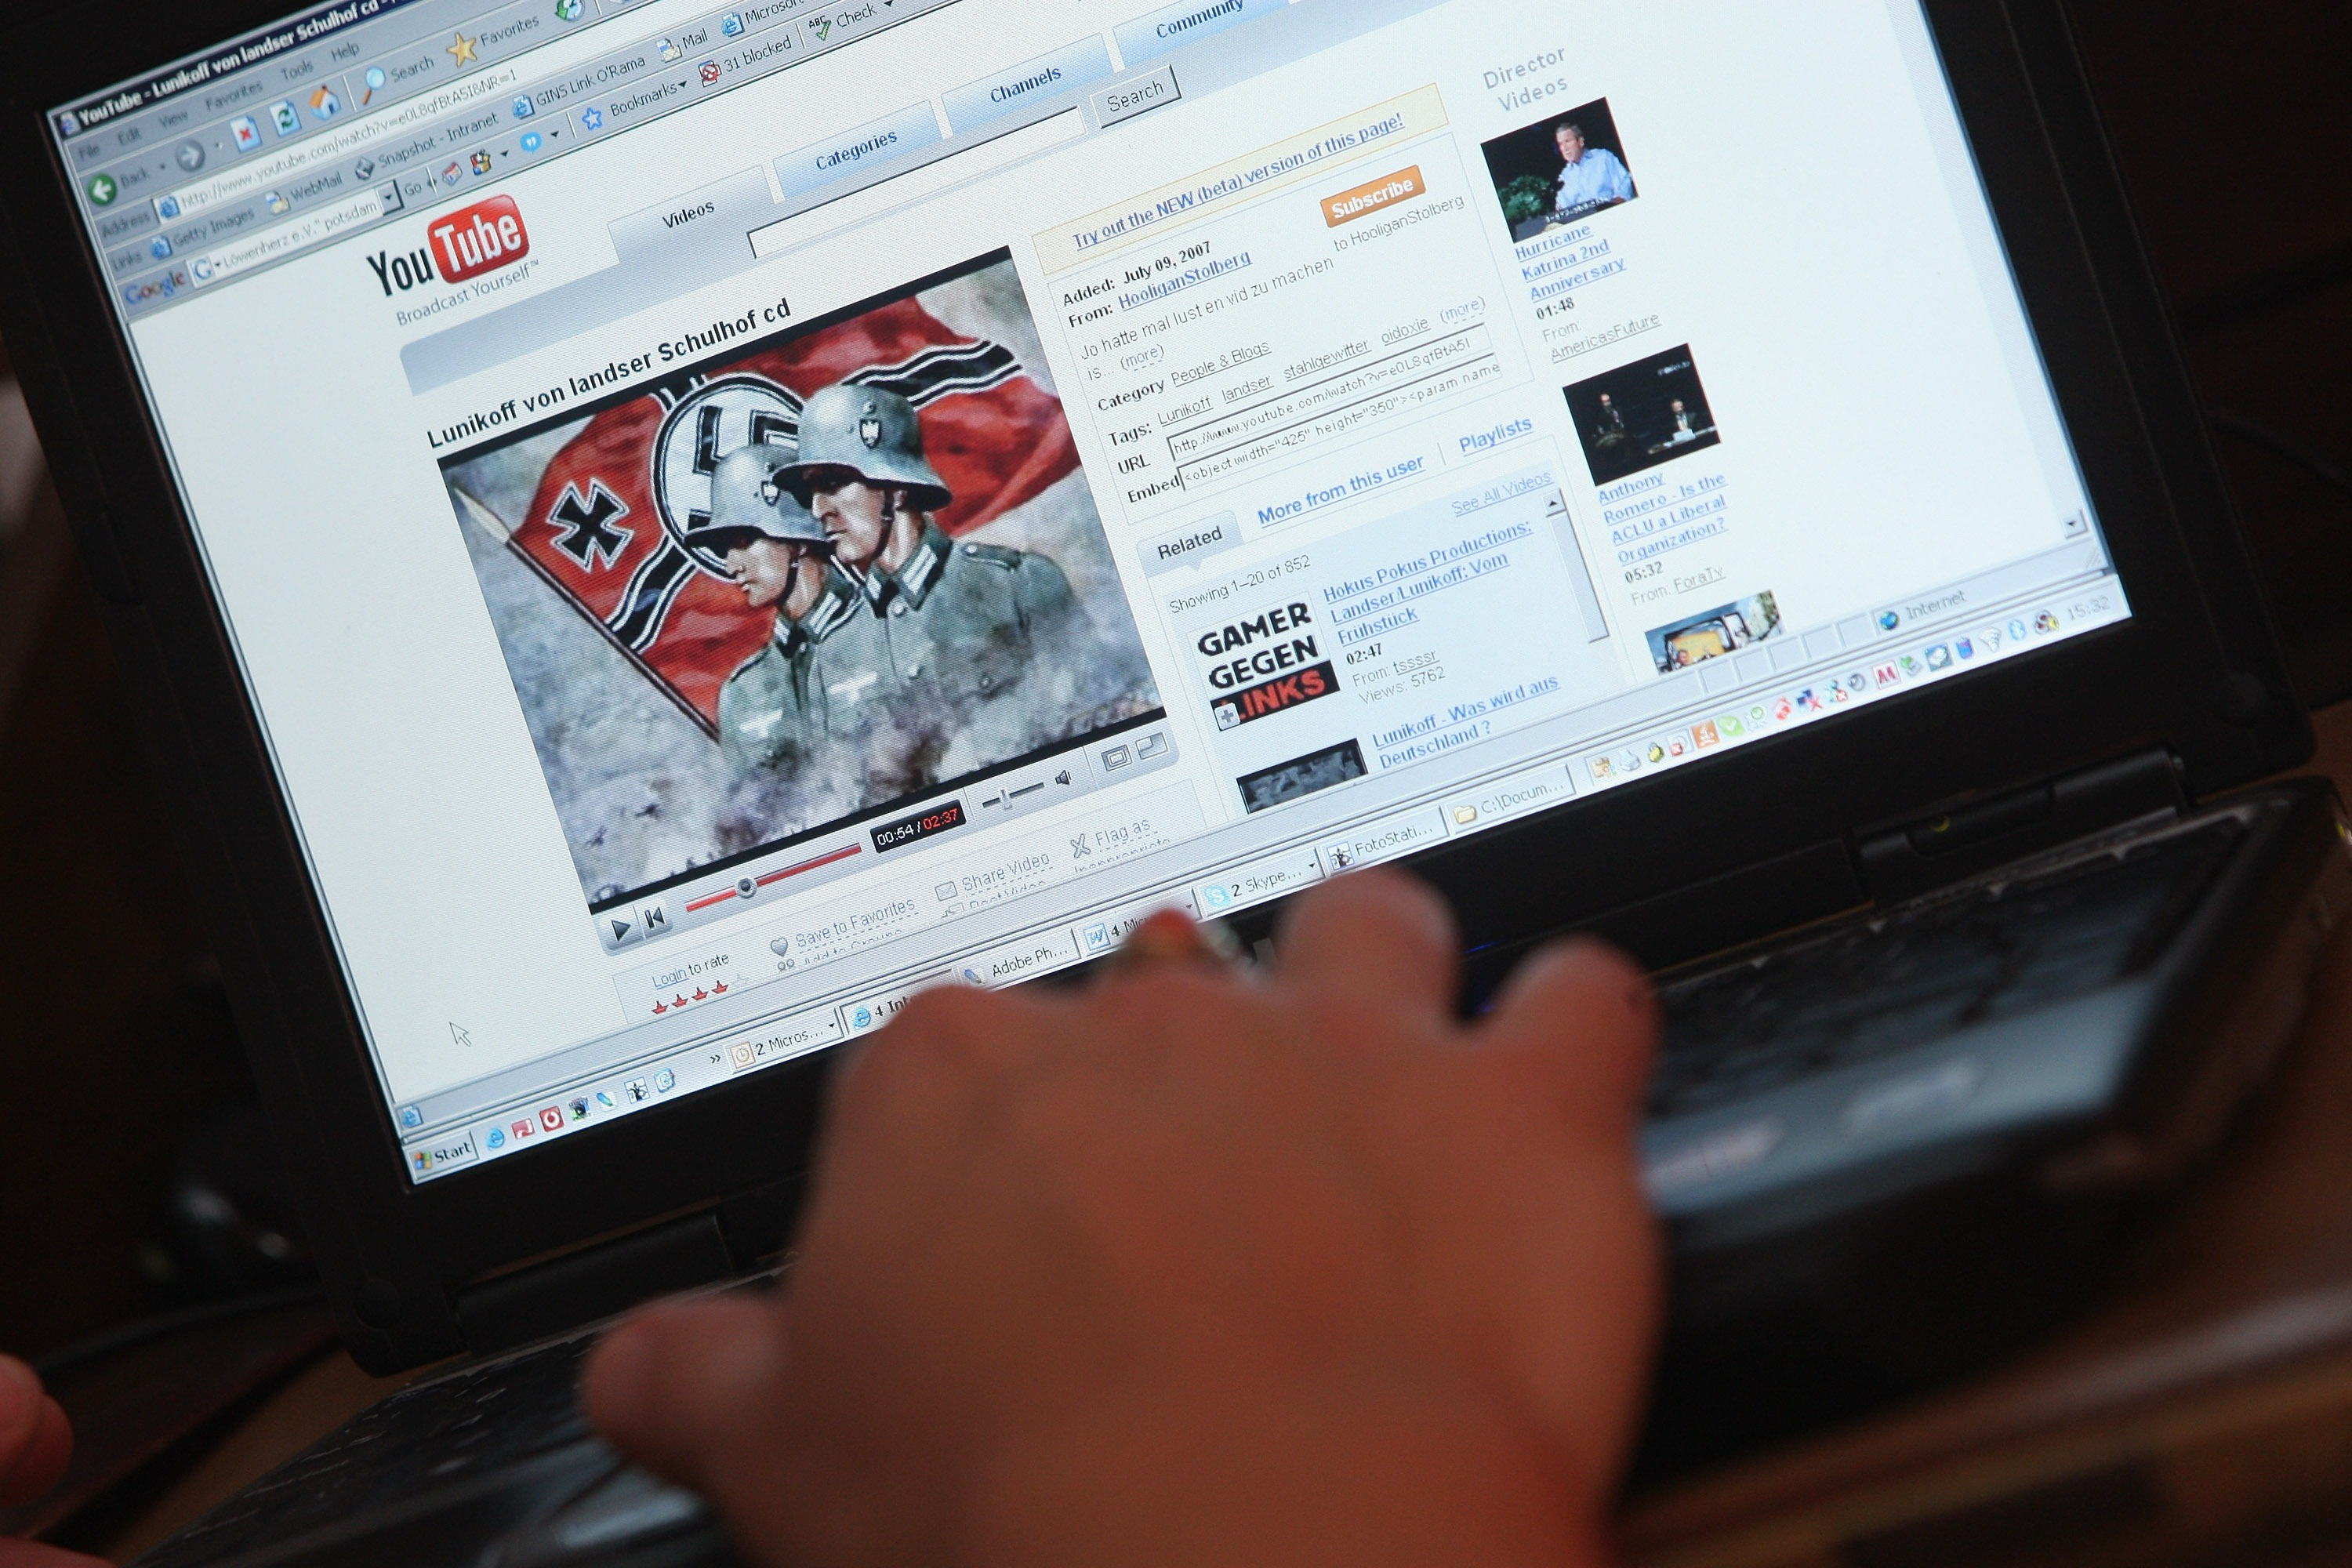 YouTube Teams with Wikipedia To Crack Down on Conspiracy Videos